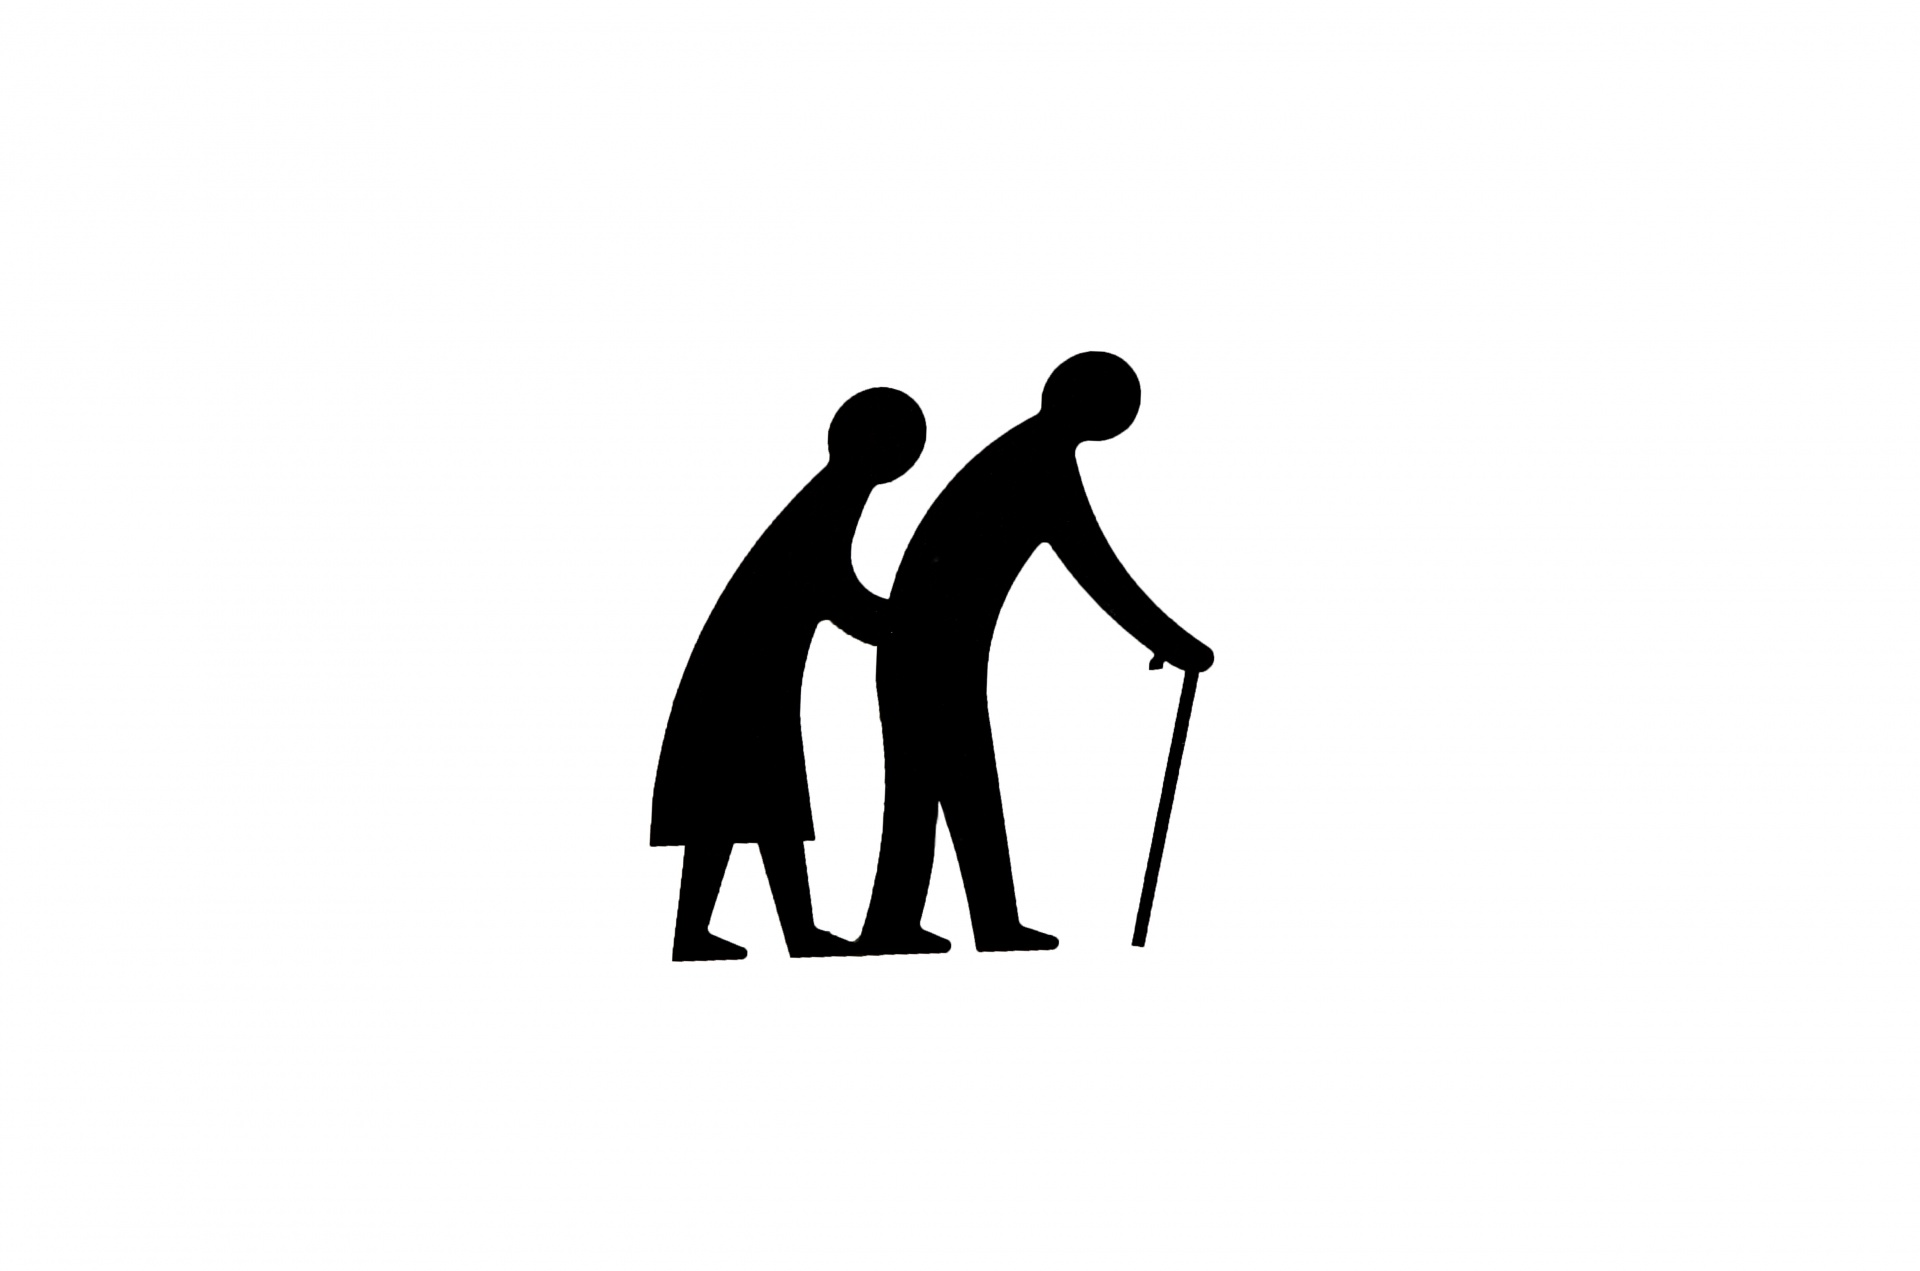 1920x1271 Silhouette Of Old People Free Stock Photo